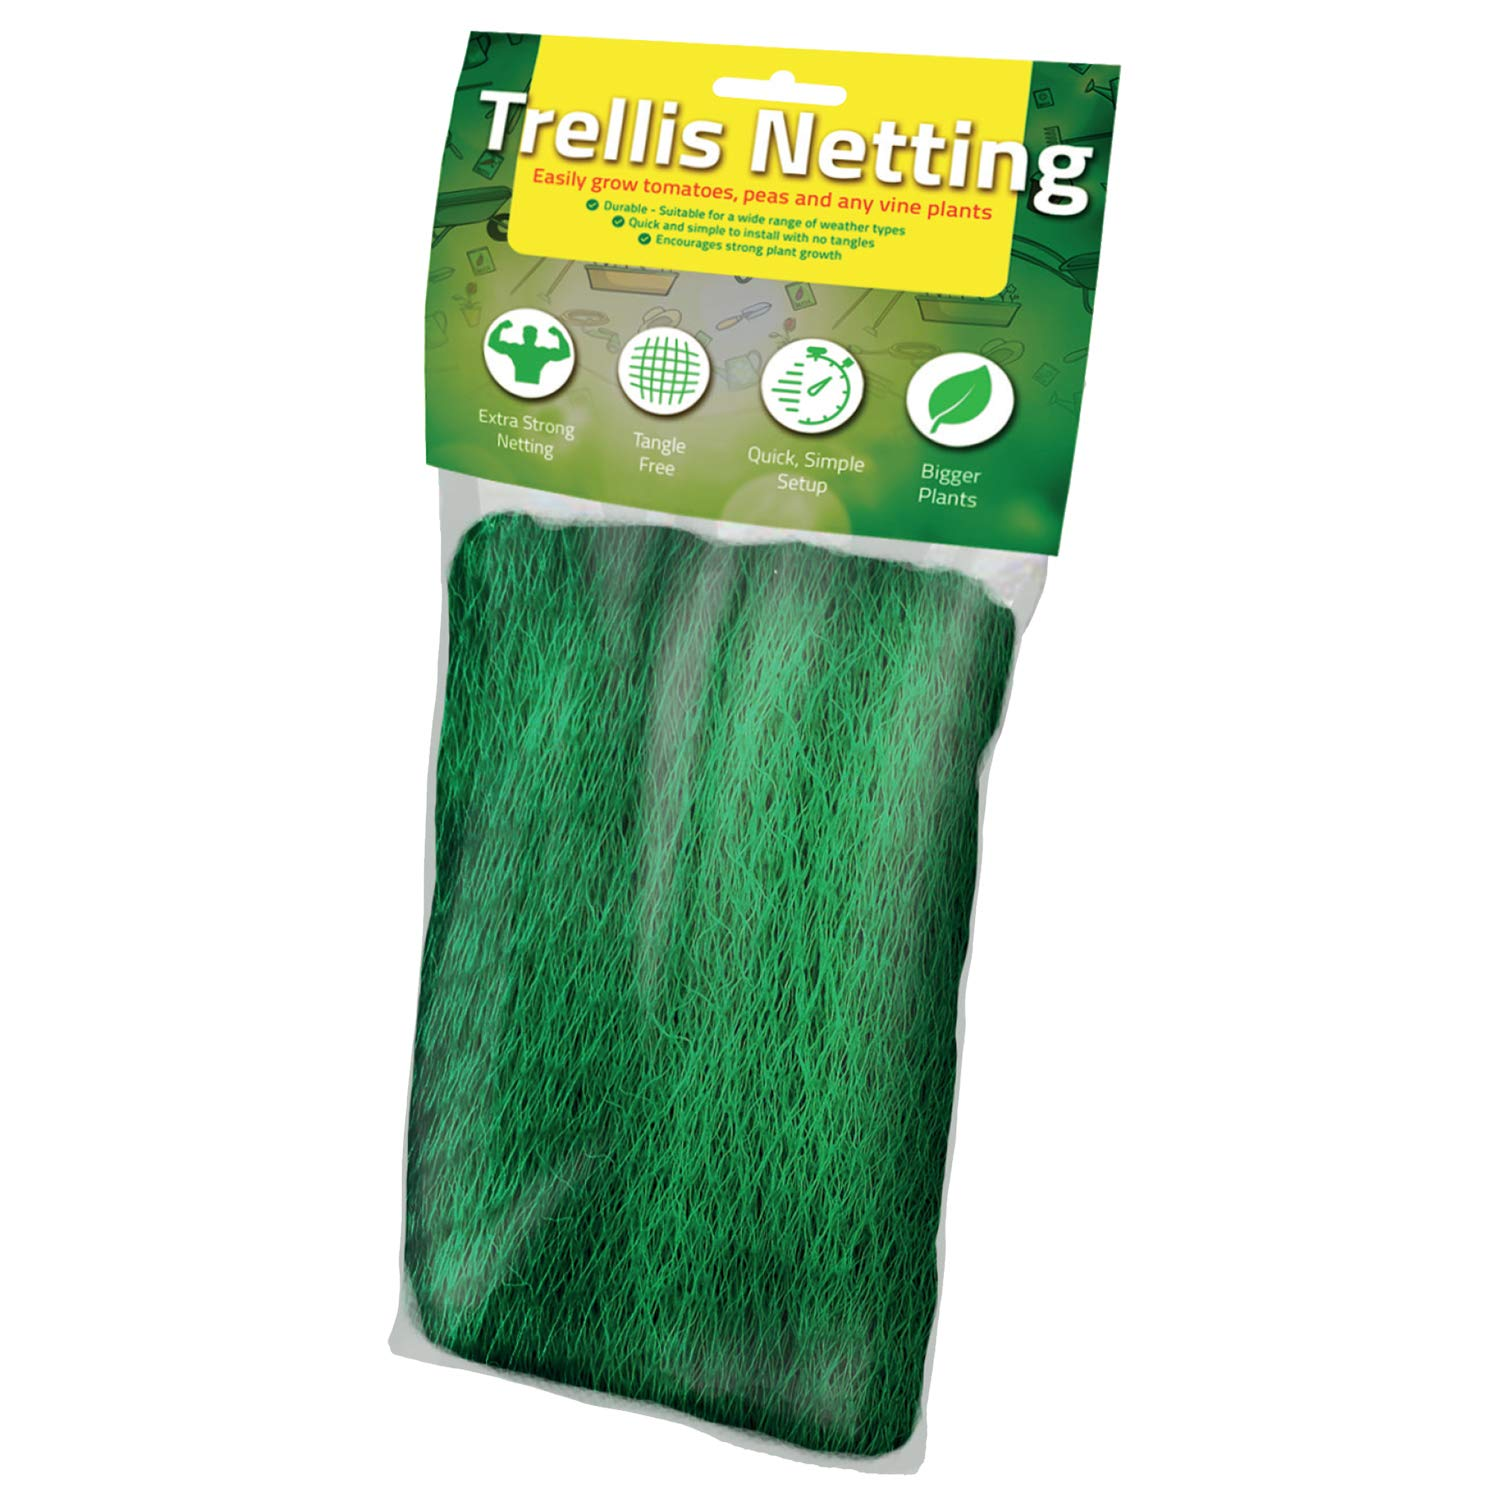 Trellis Netting [Best Heavy Duty NET] Grow Garden Flowers: Green Pea, Cucumber, Tomatoes, Bean and Vine Plants [Supports Strong Growth] Trellis Scrog Mesh Fence - Large 5 x 60 Foot /1.5 x 18.2 Meters